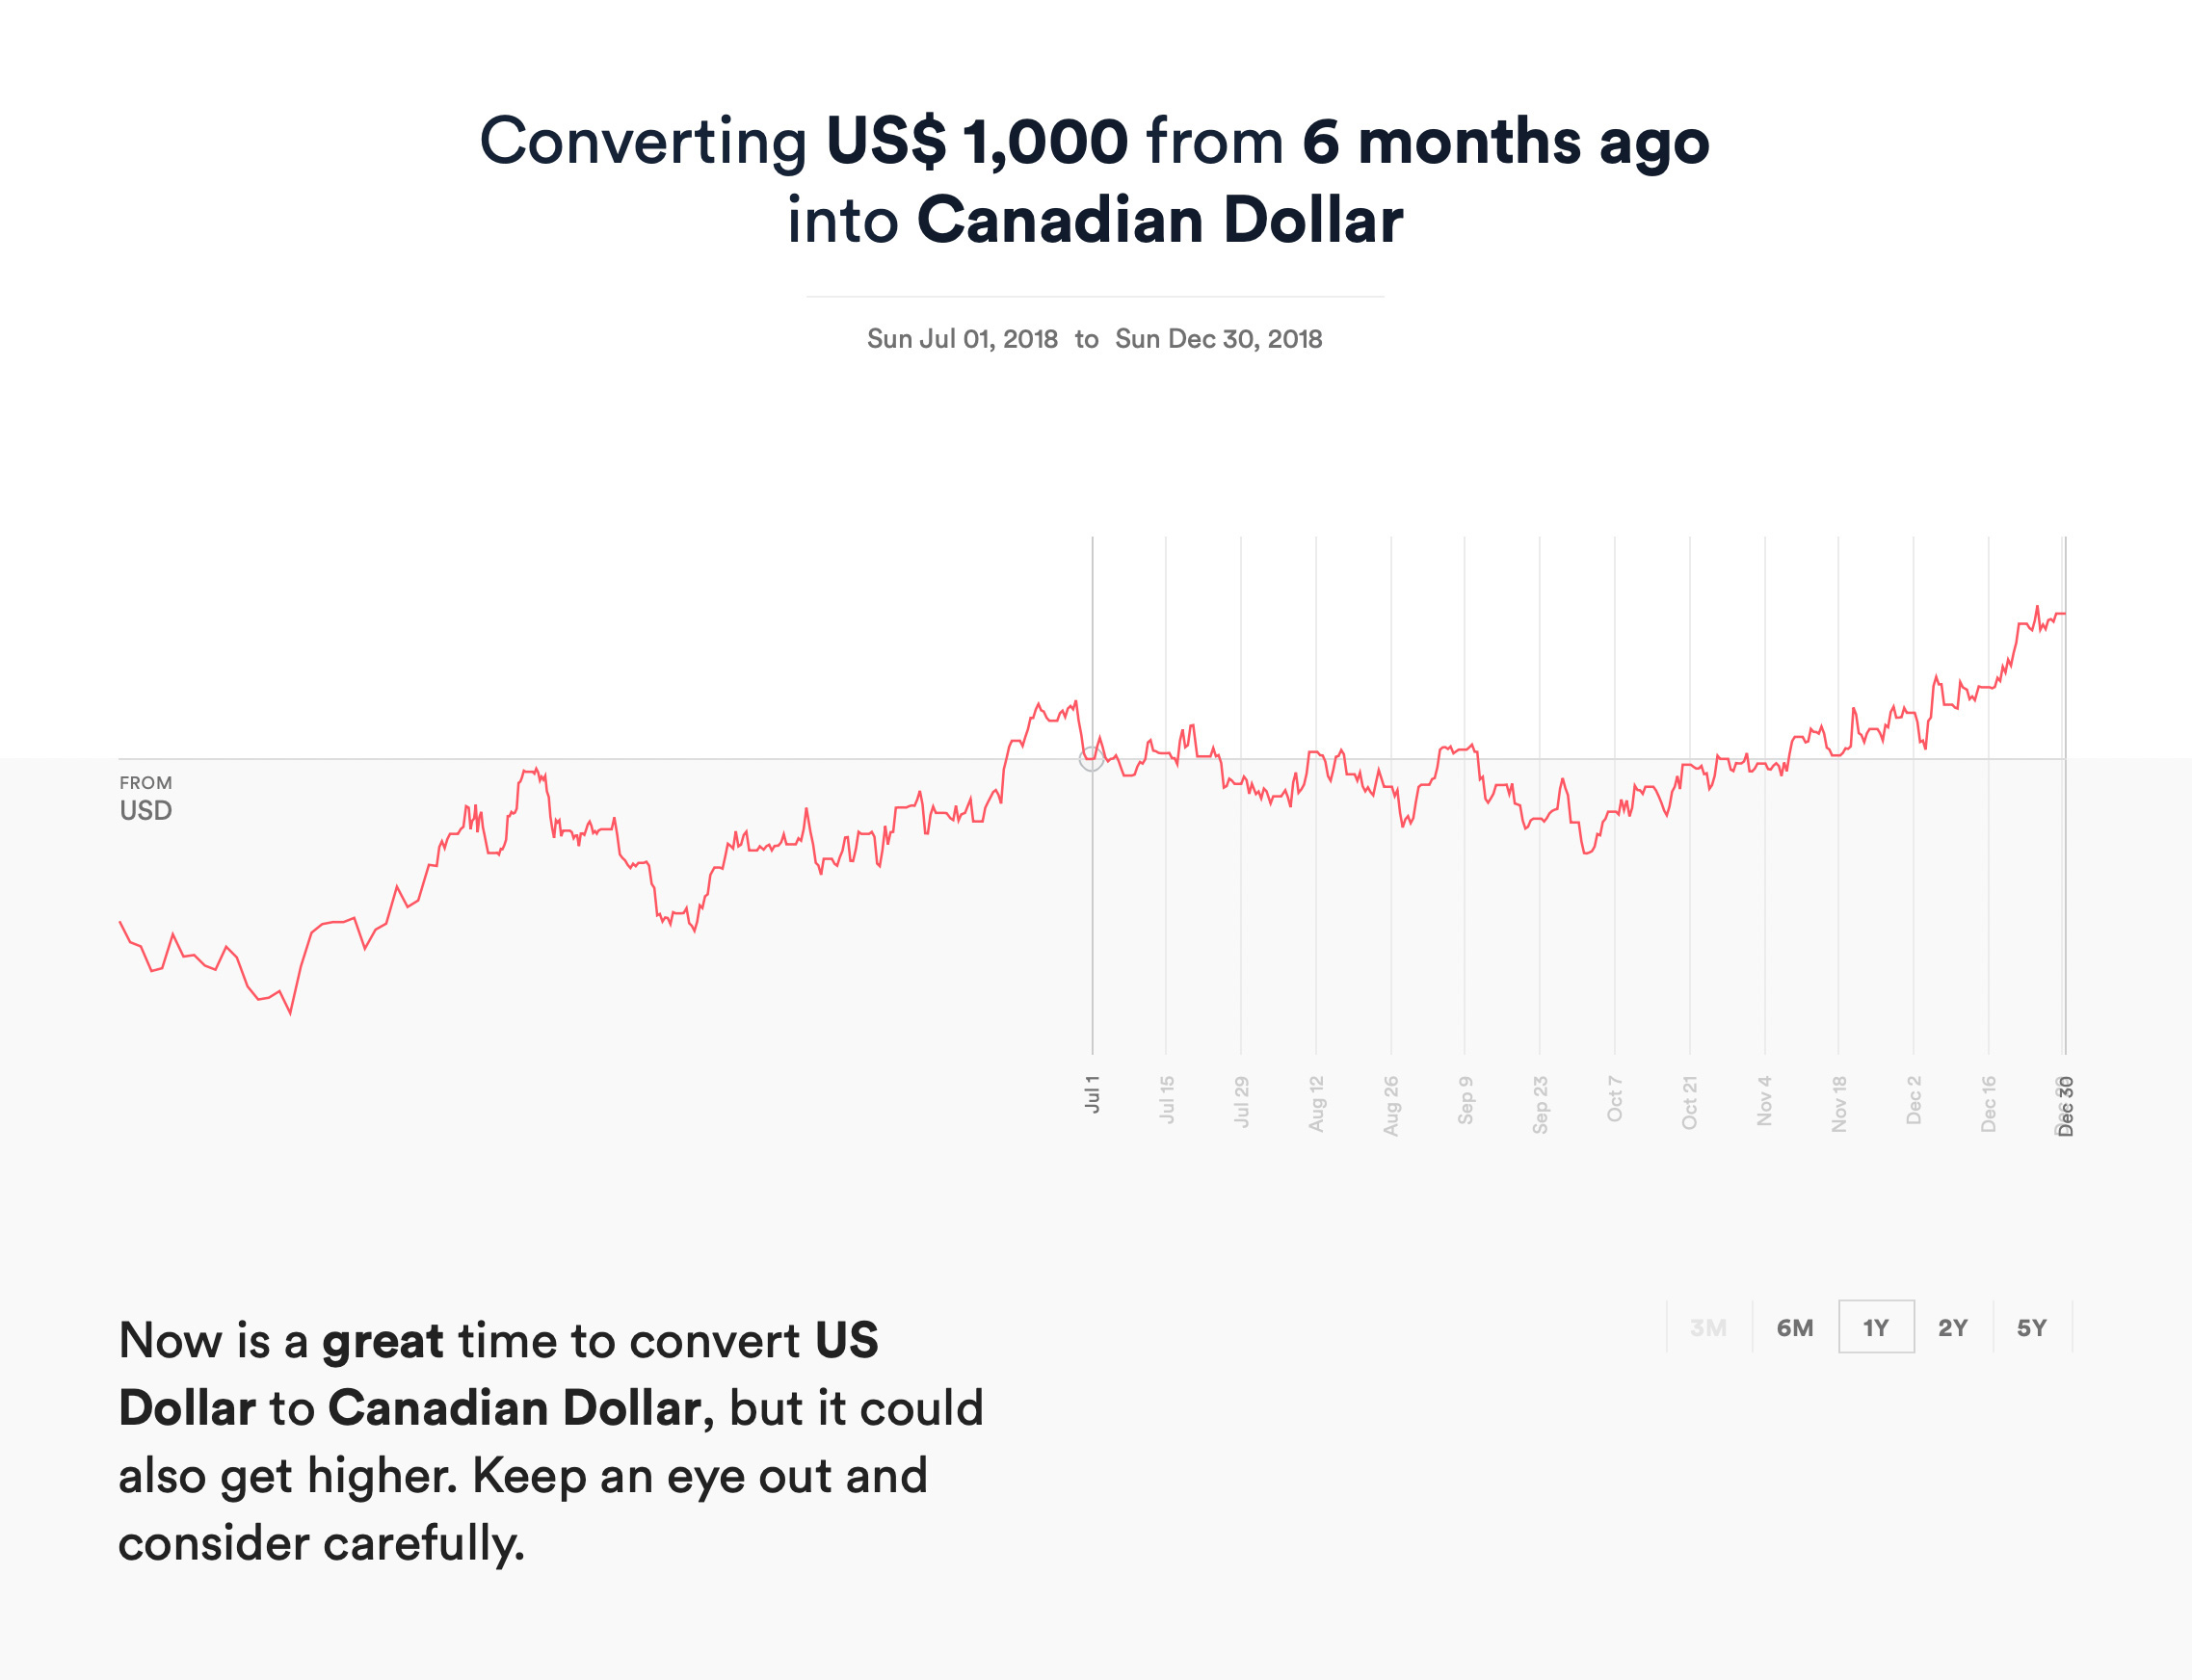 Should I Exchange Now — Conversion USD to CAD